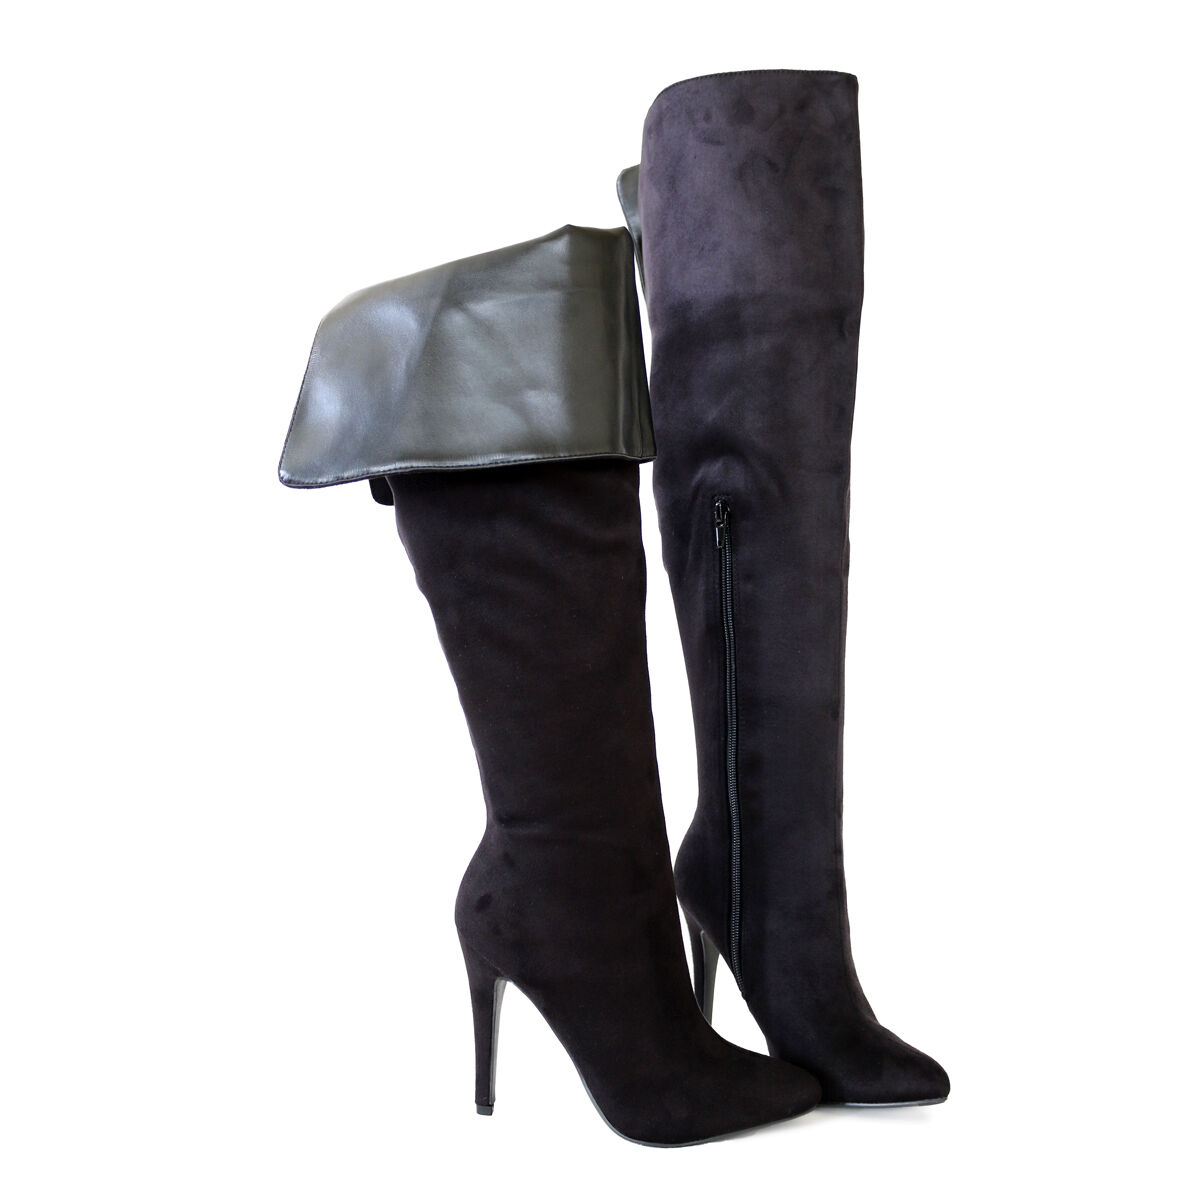 Chic Sexy Stiletto Heel  Cuff Down or Suede Thigh Over The Knee High Boots Black